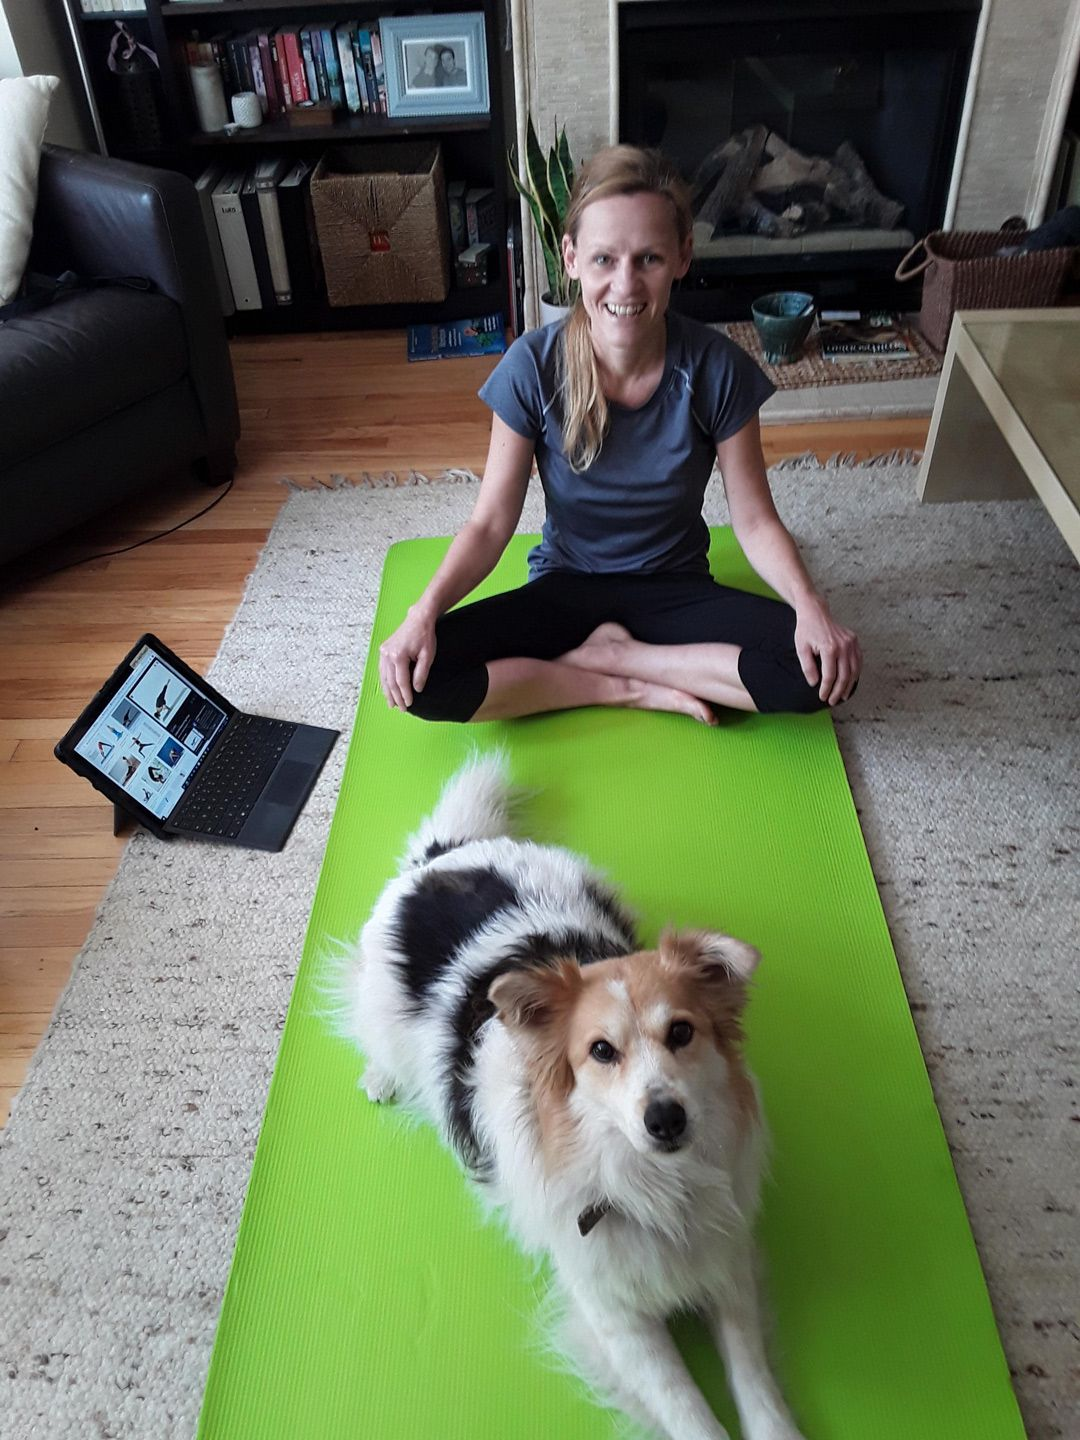 Female teacher with her dog, computer and yoga mat